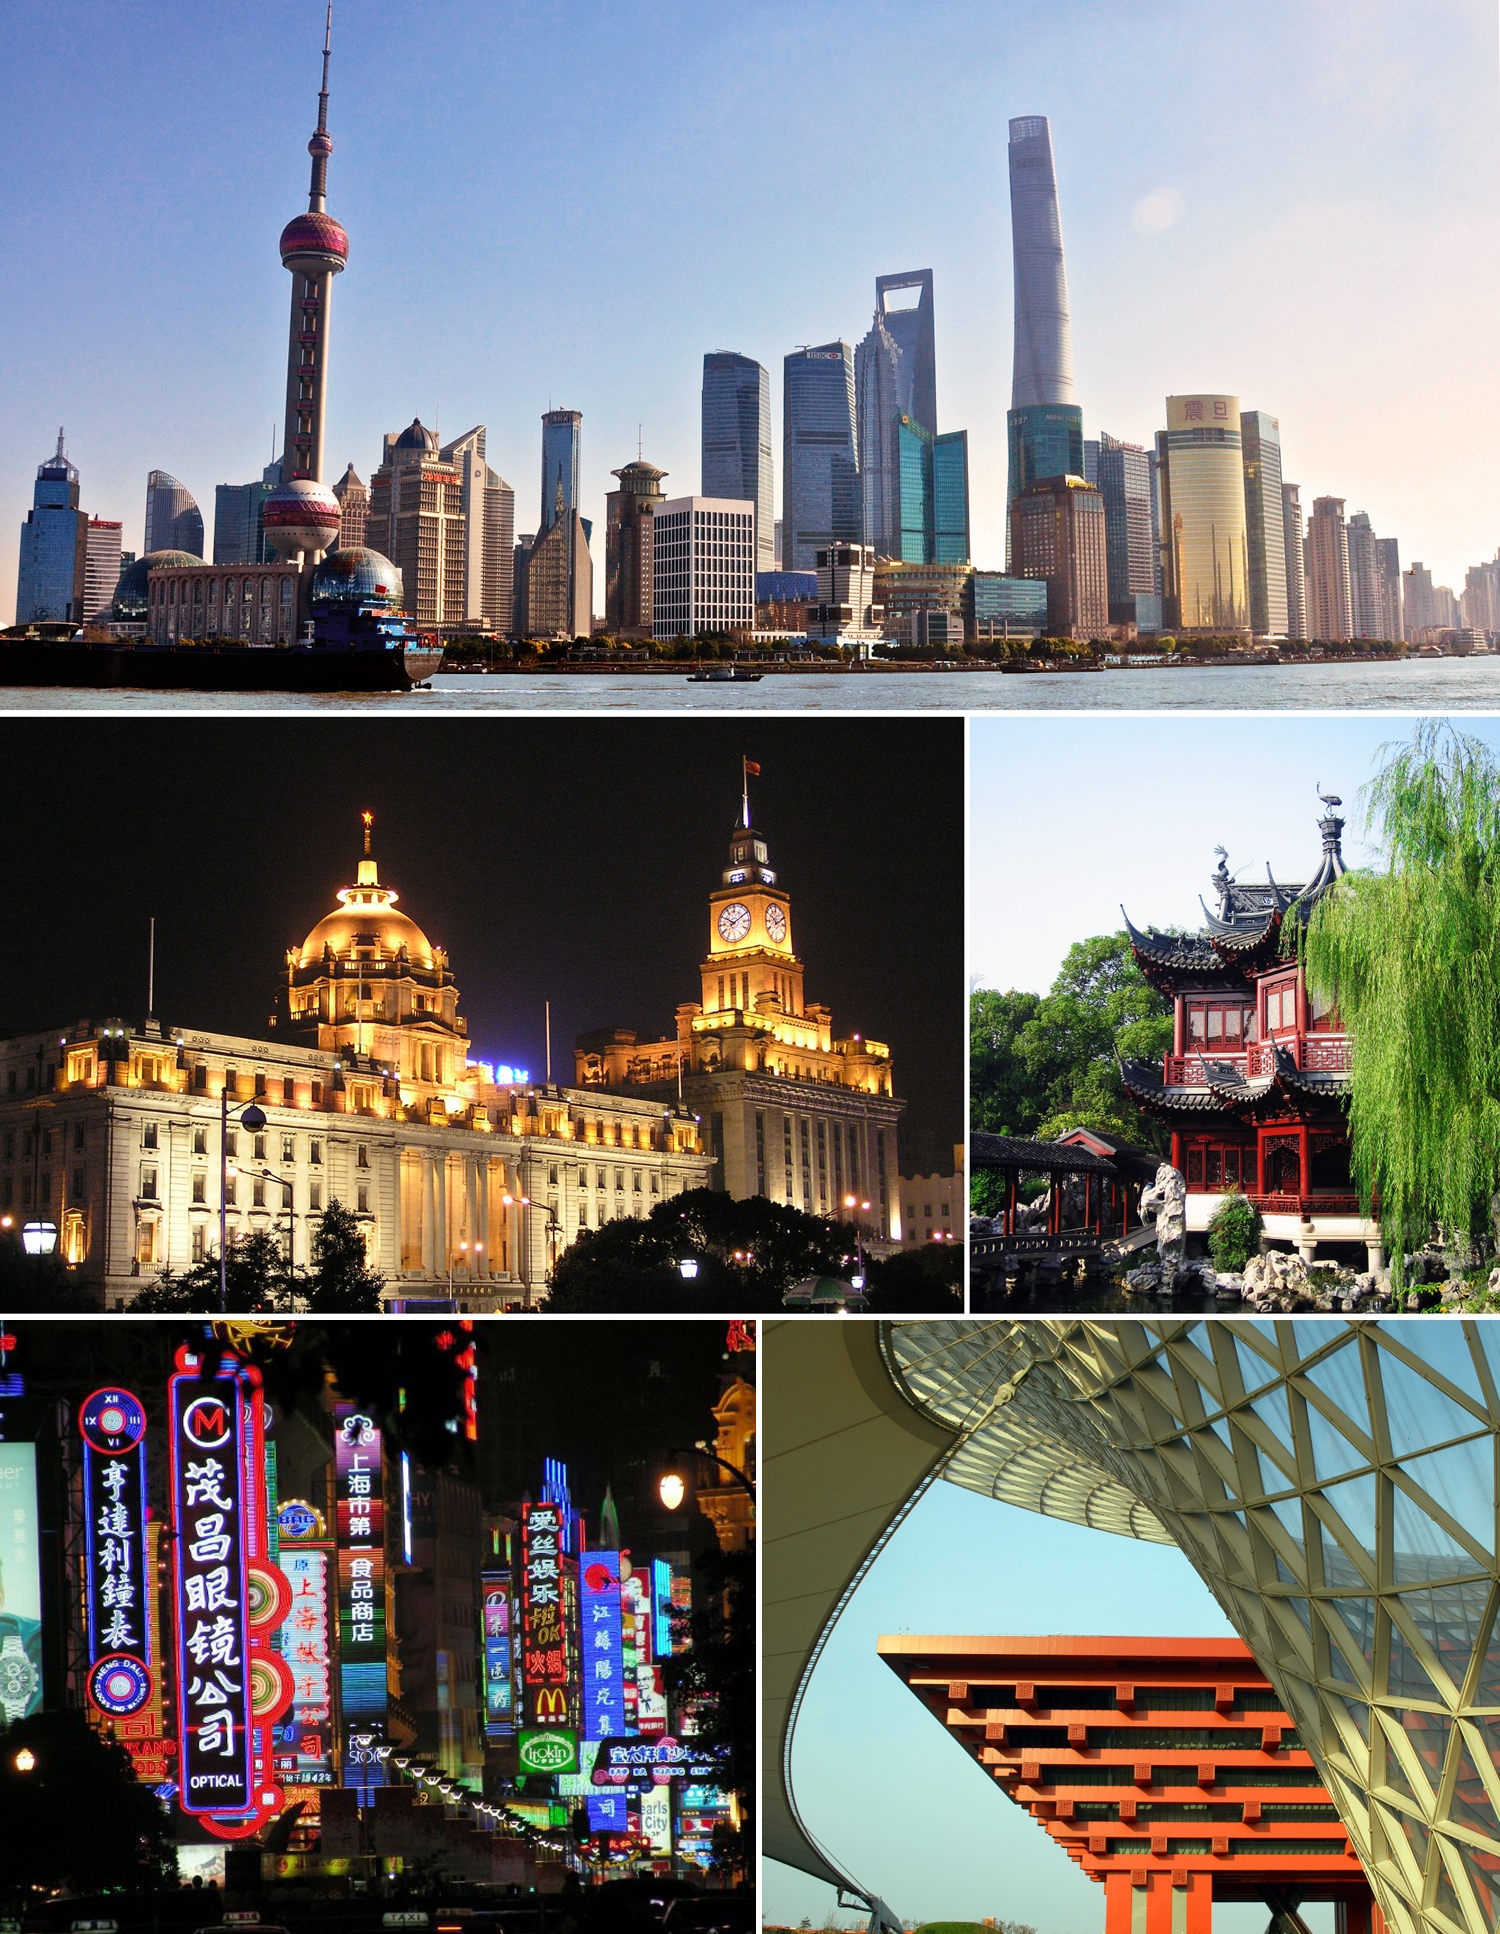 https://i1.wp.com/upload.wikimedia.org/wikipedia/commons/d/de/Shanghai_montage.png